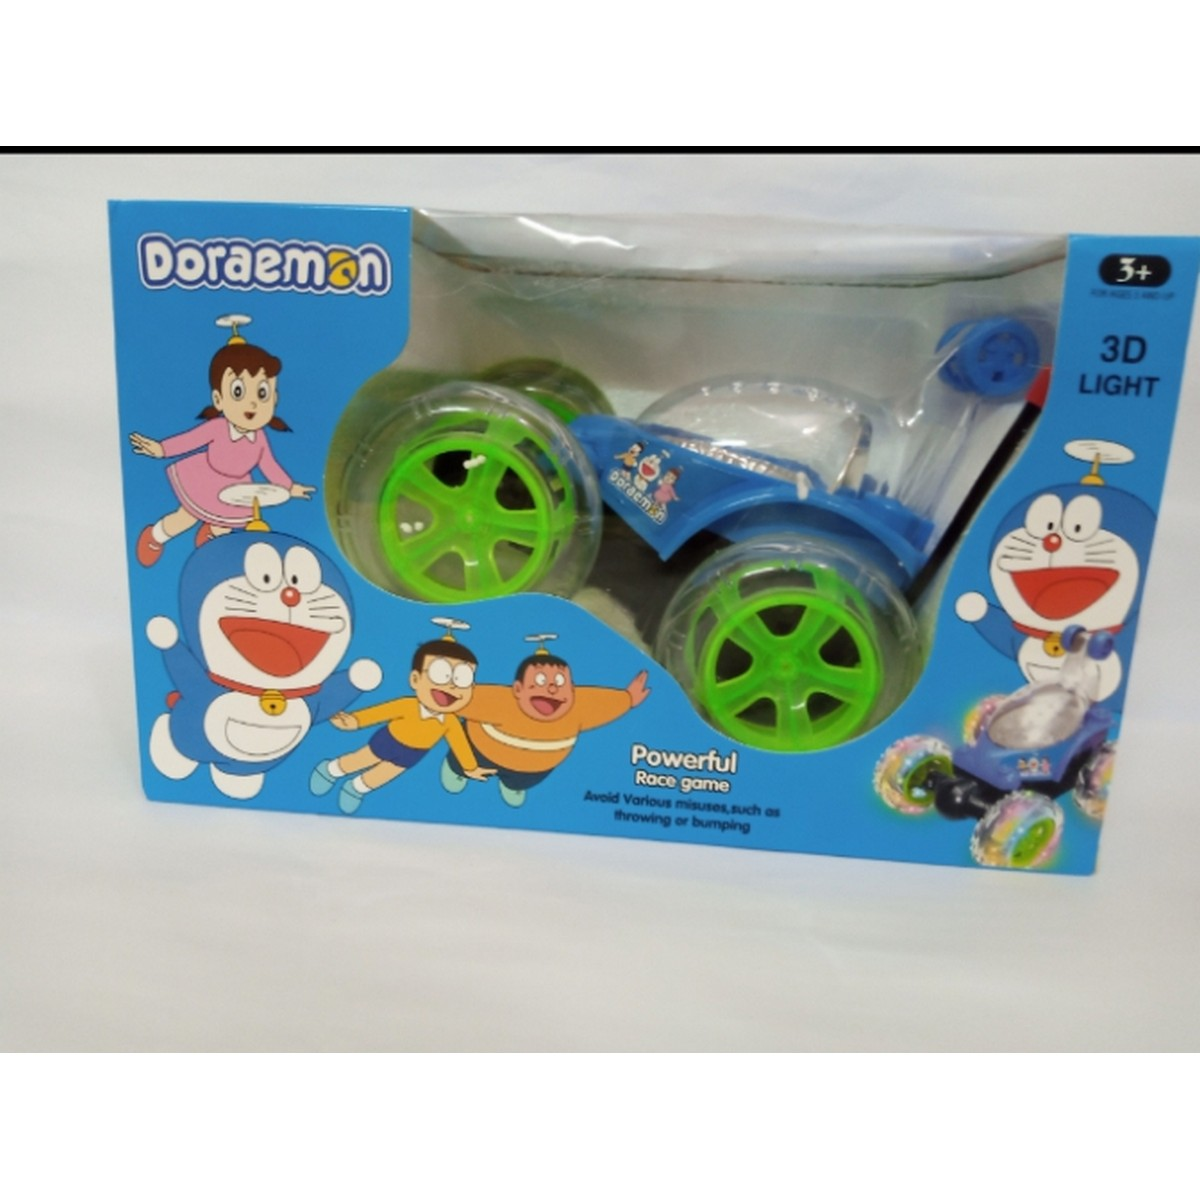 360 DEGREE ROTATIONAL REMOTE CONTROL BIG SIZE CAR FOR KIDS